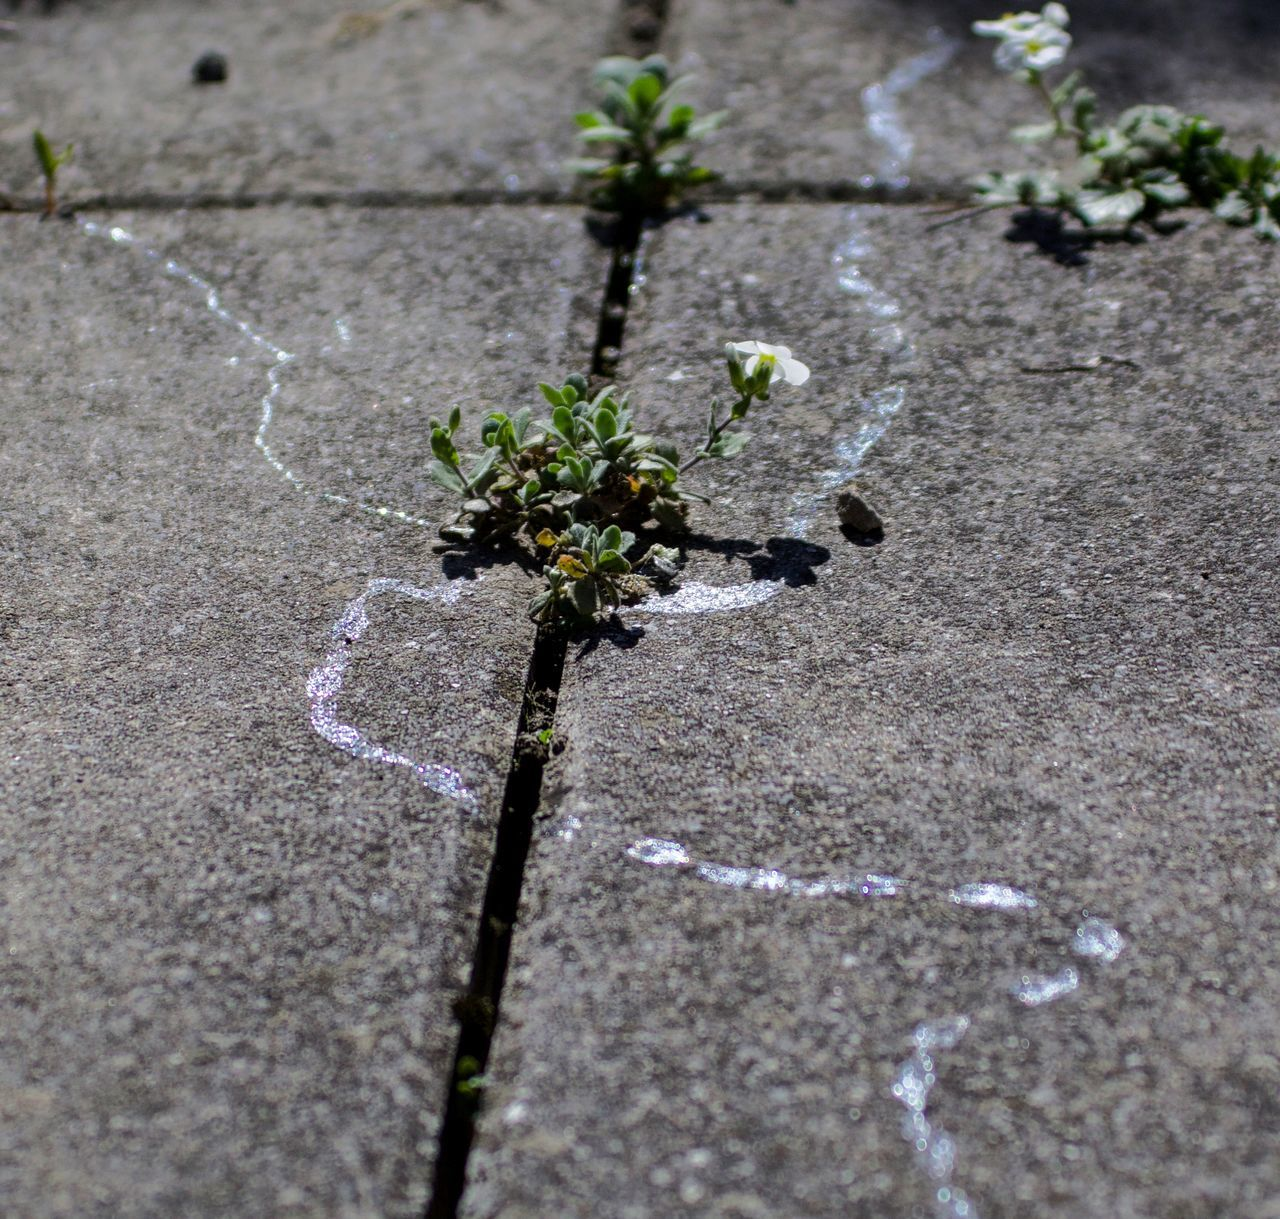 Spring Impressions Beauty In Nature Close-up Day Flower Nature No People Outdoors Plant Slime Slimy Trace Traces